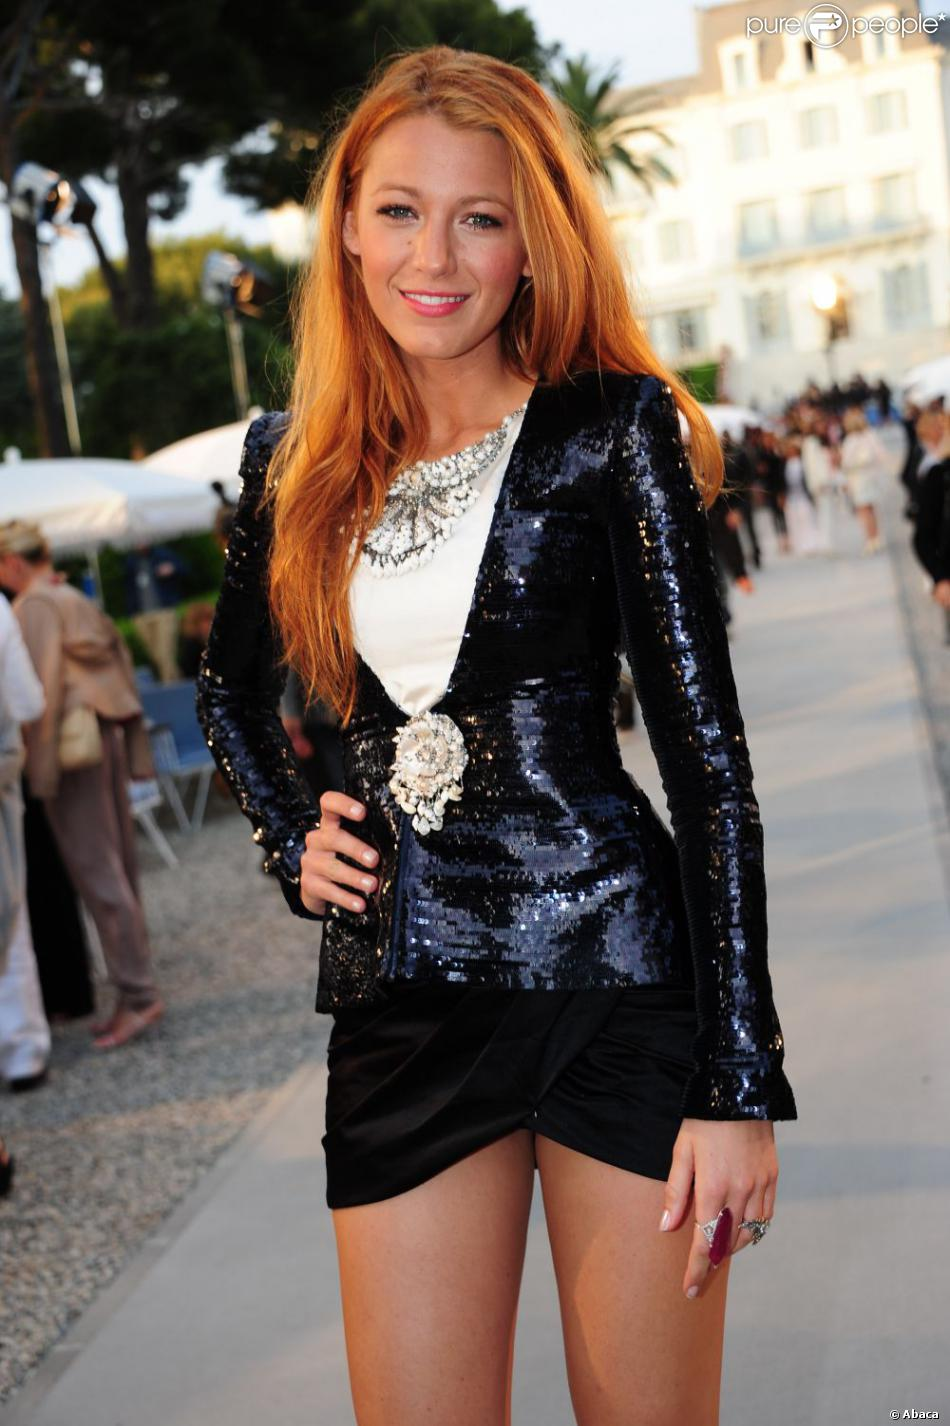 Blake Lively à Antibes En Mai 2011 Purepeople